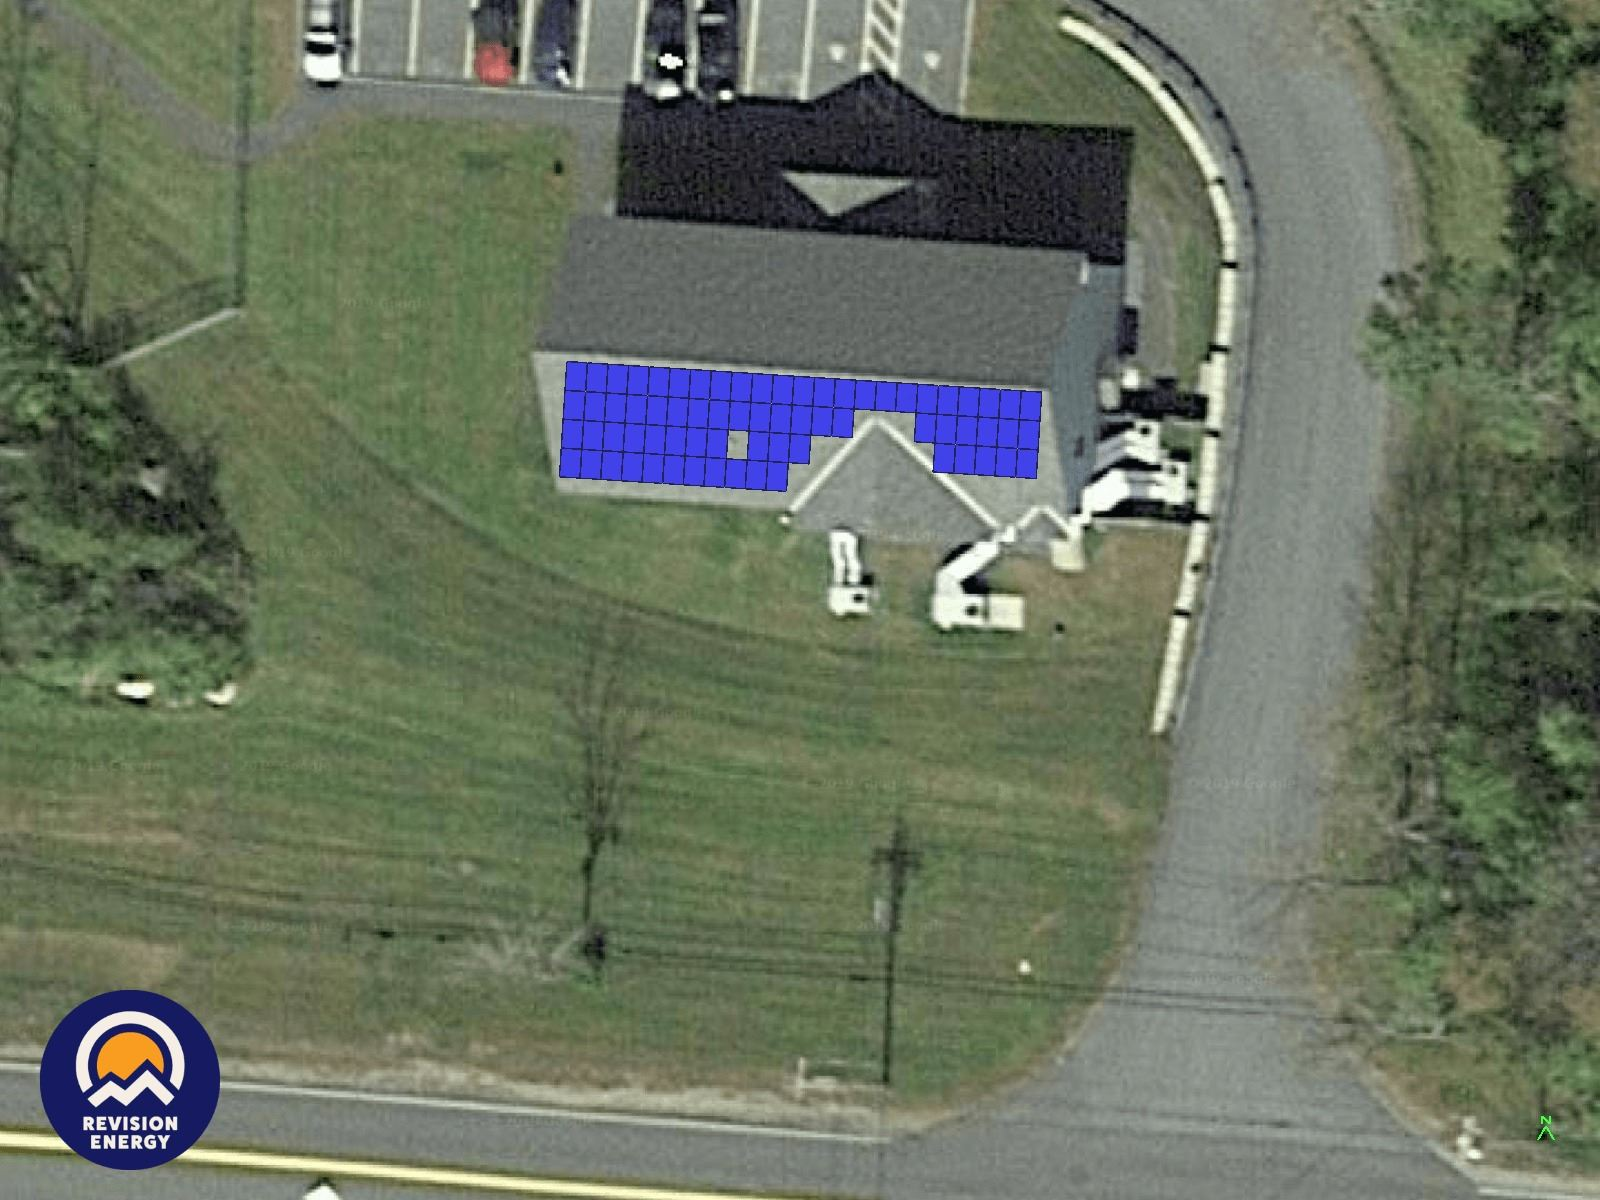 Lebanon Public Works Administration Building roof with solar array depiction Opens in new window